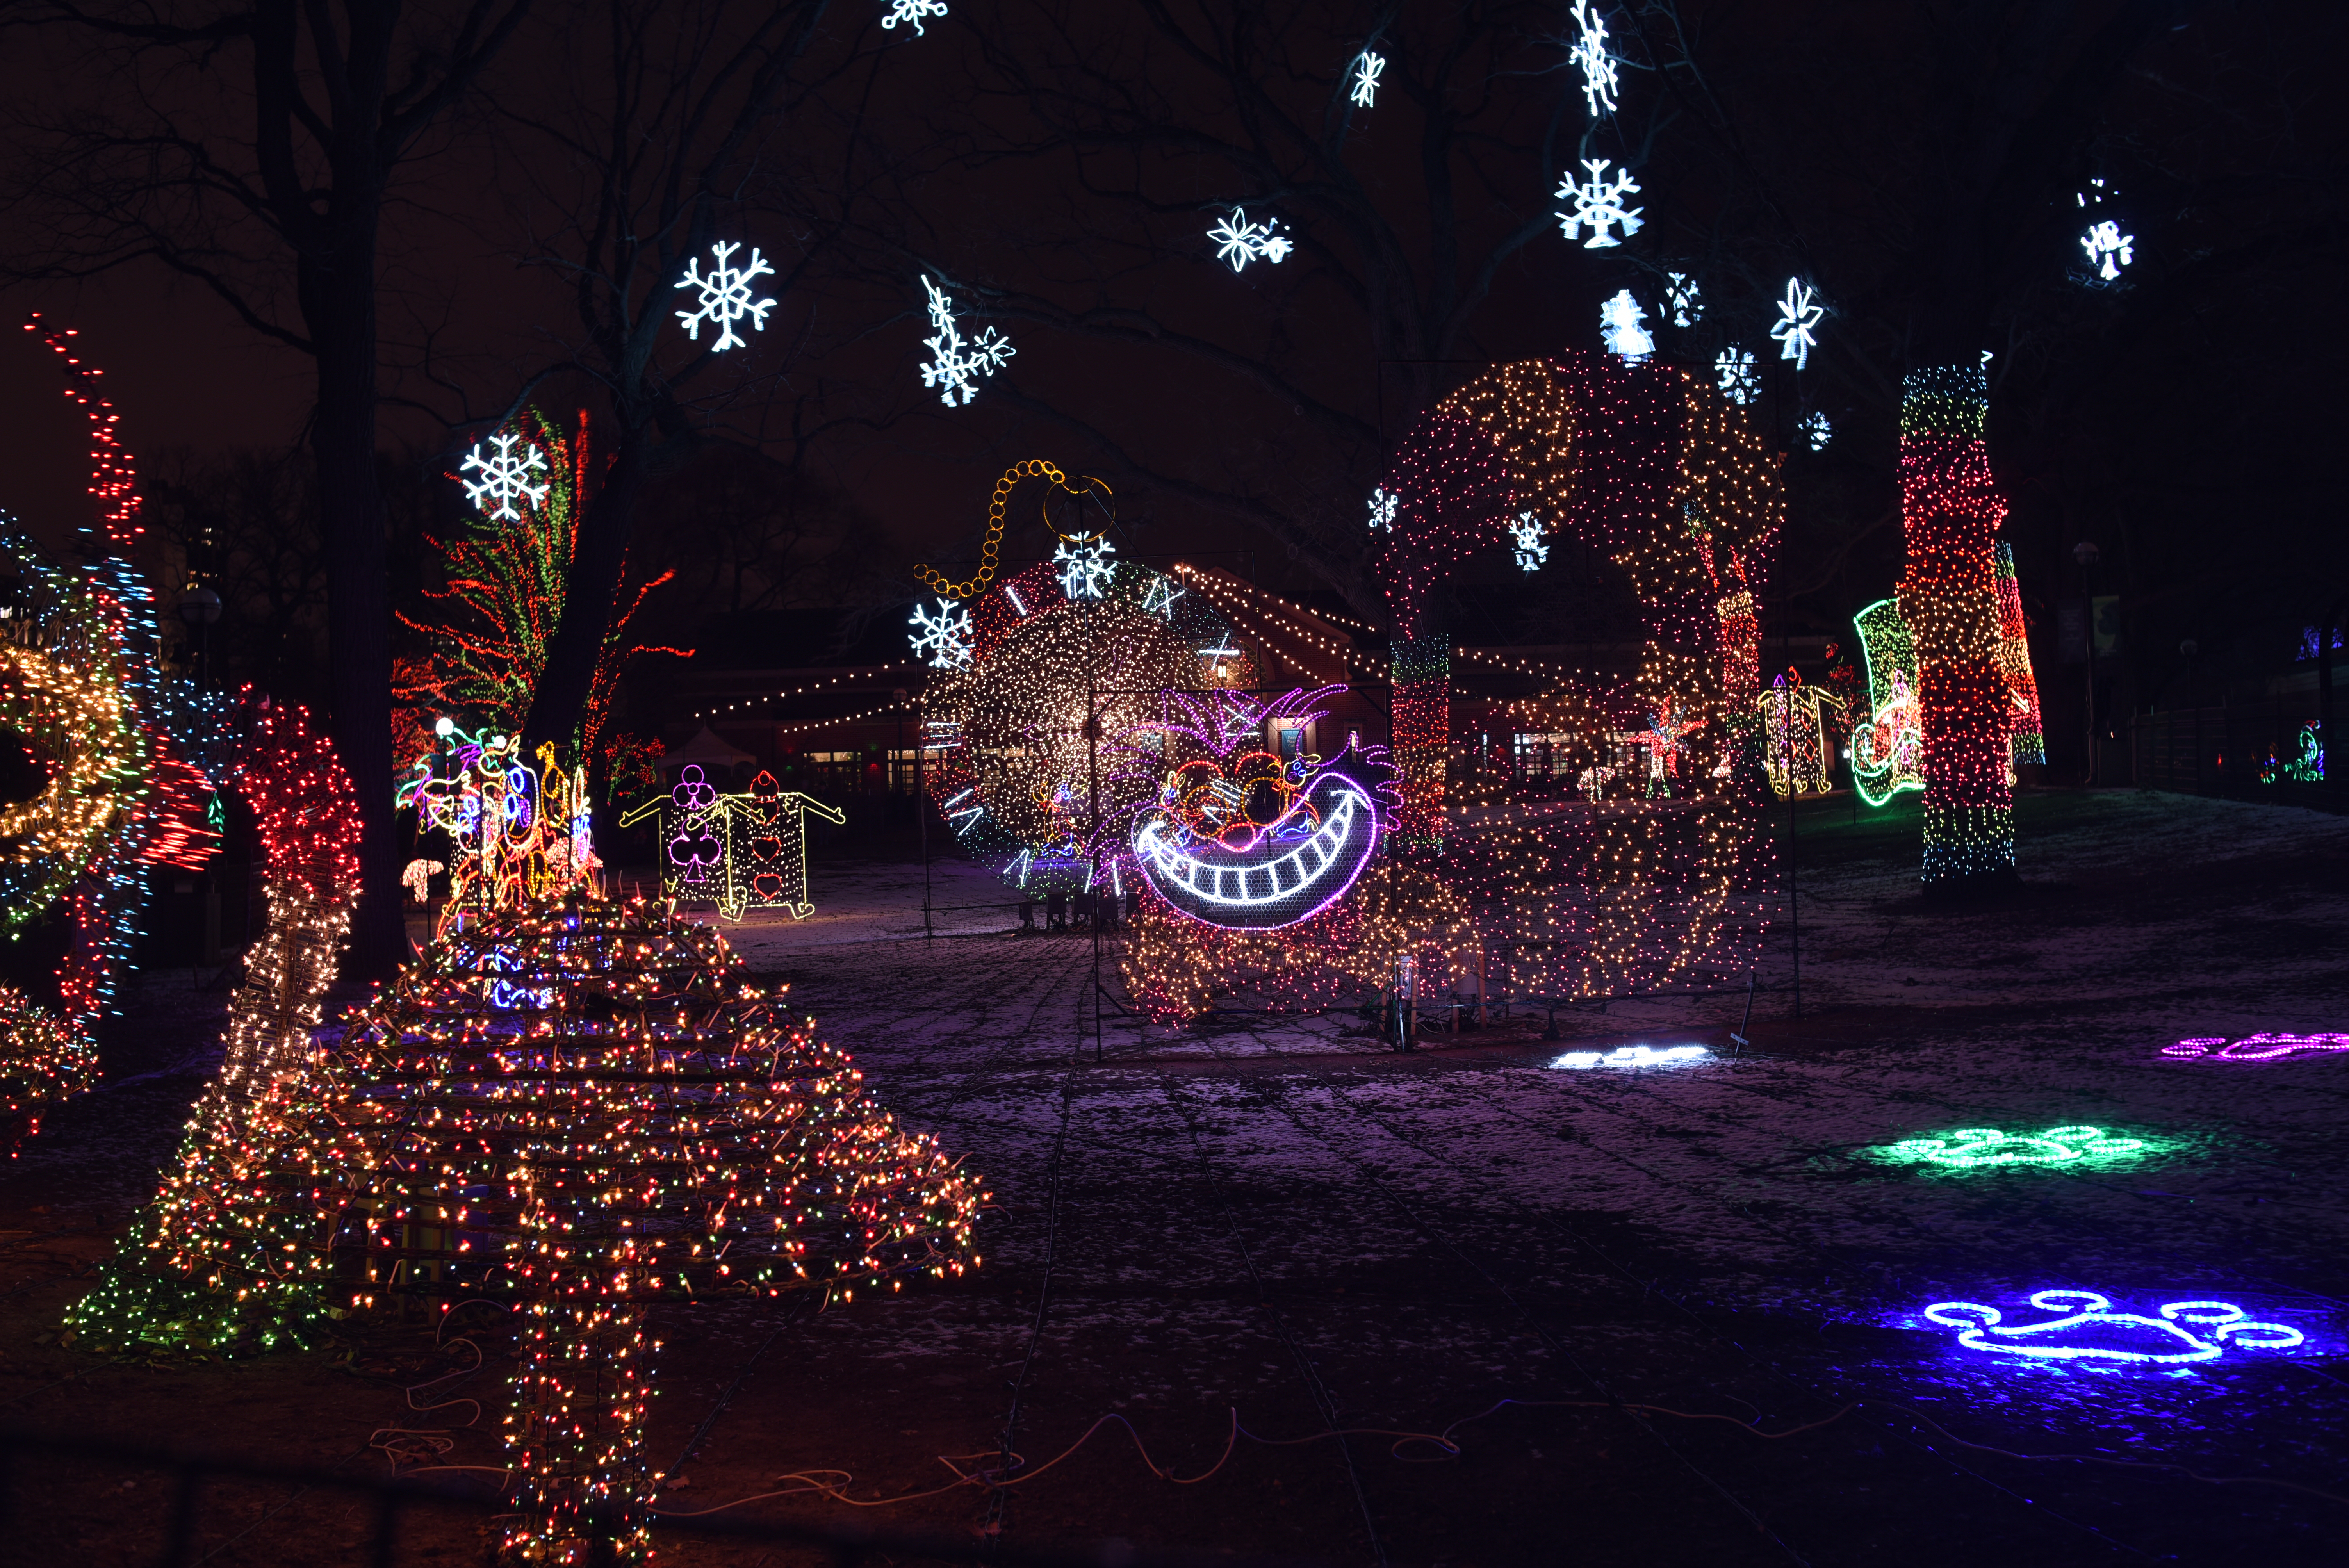 Where to see festive holiday lights in Chicago